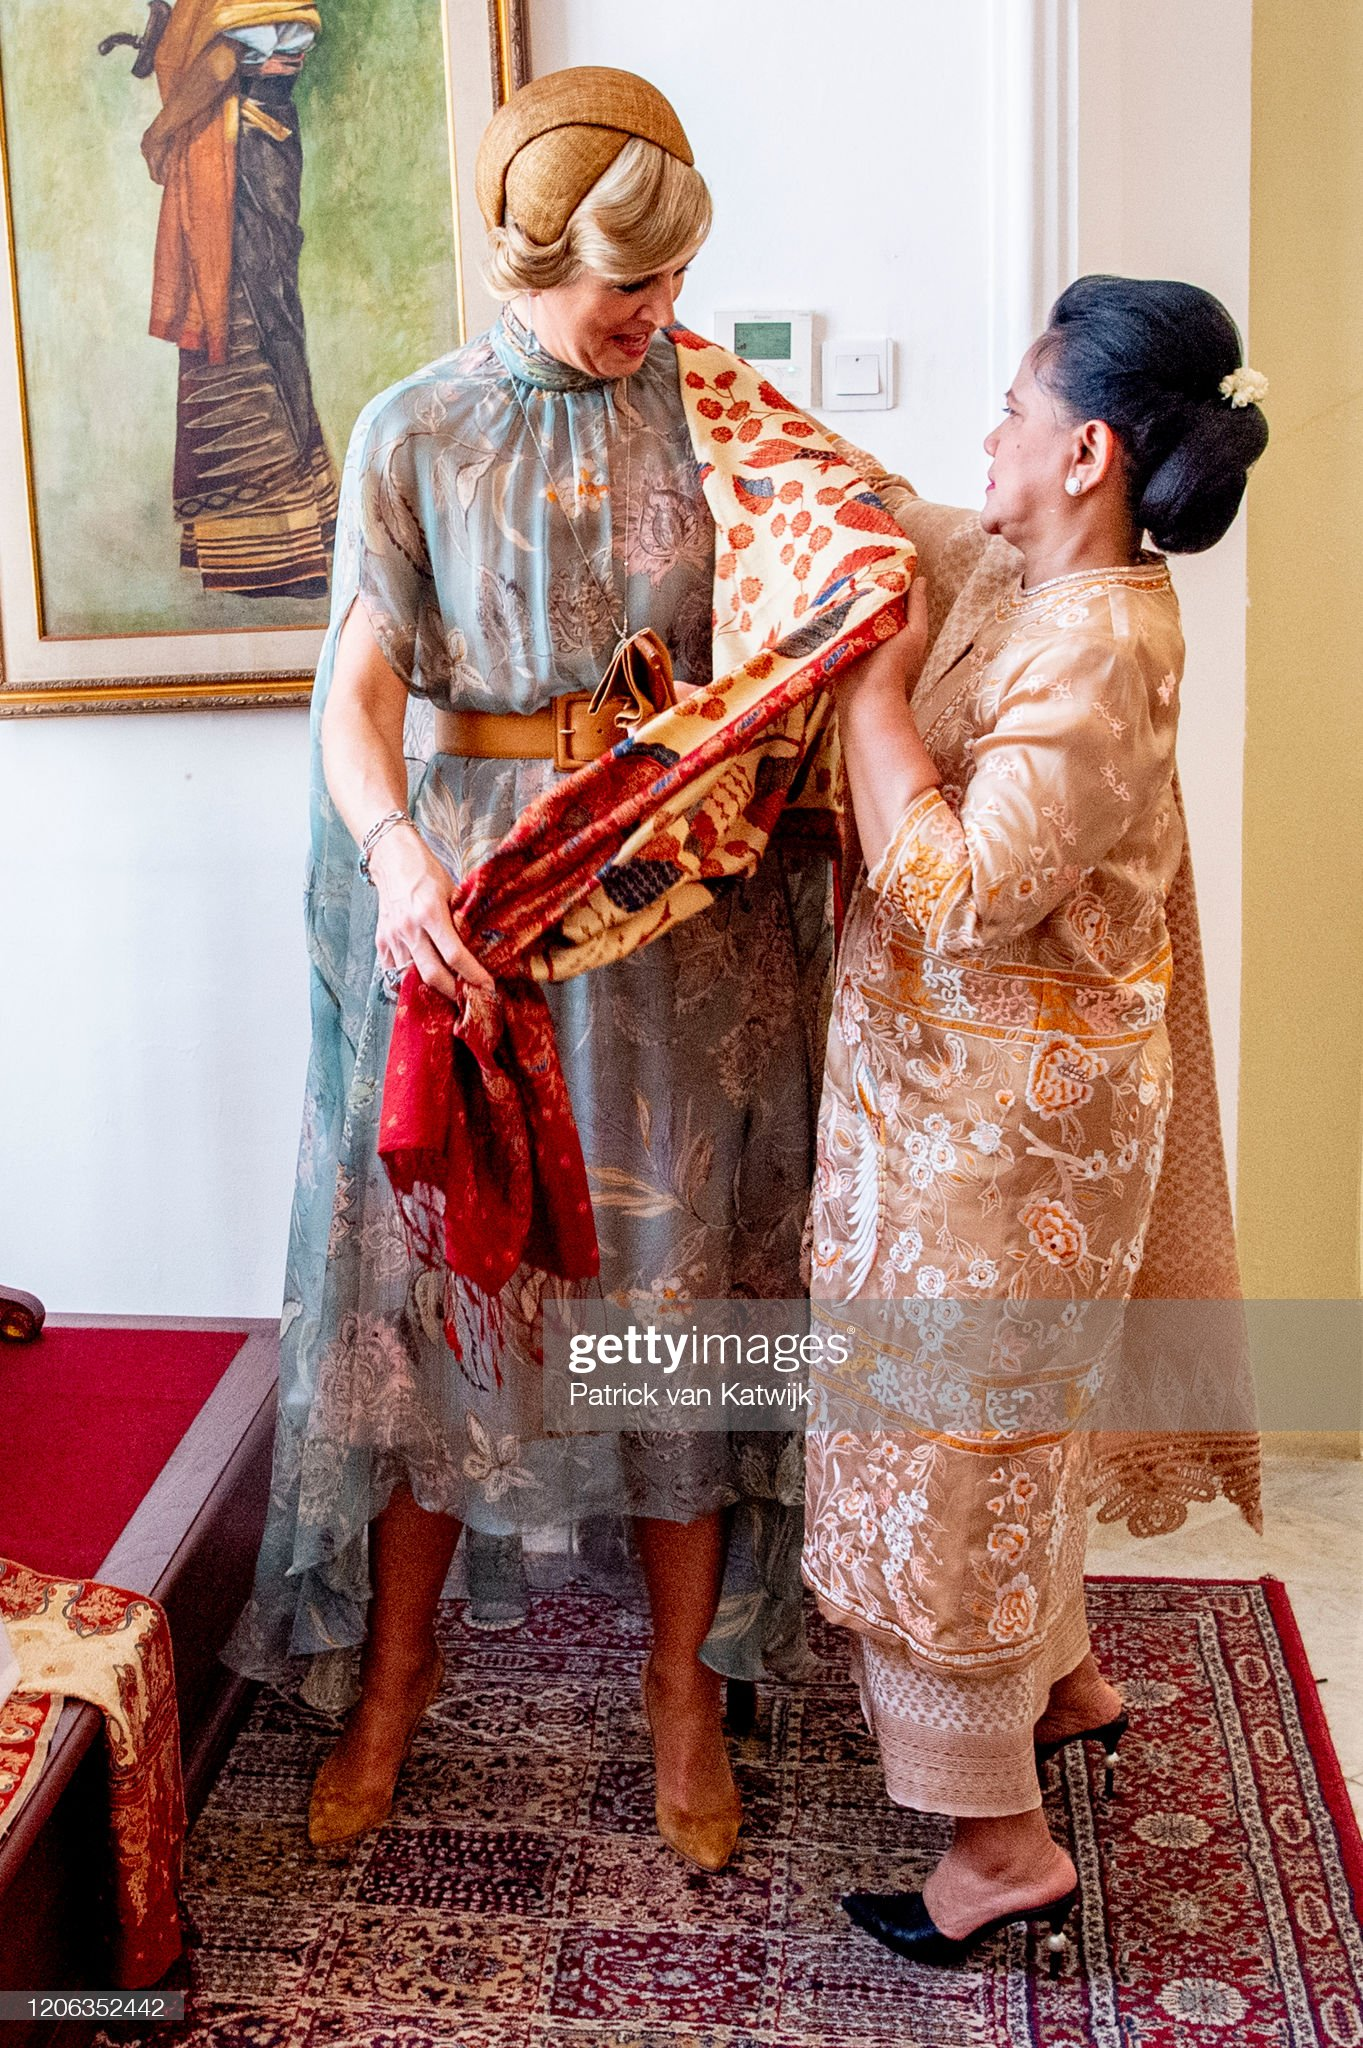 https://media.gettyimages.com/photos/queen-maxima-of-the-netherlands-are-welcomed-by-president-jcand-his-picture-id1206352442?s=2048x2048